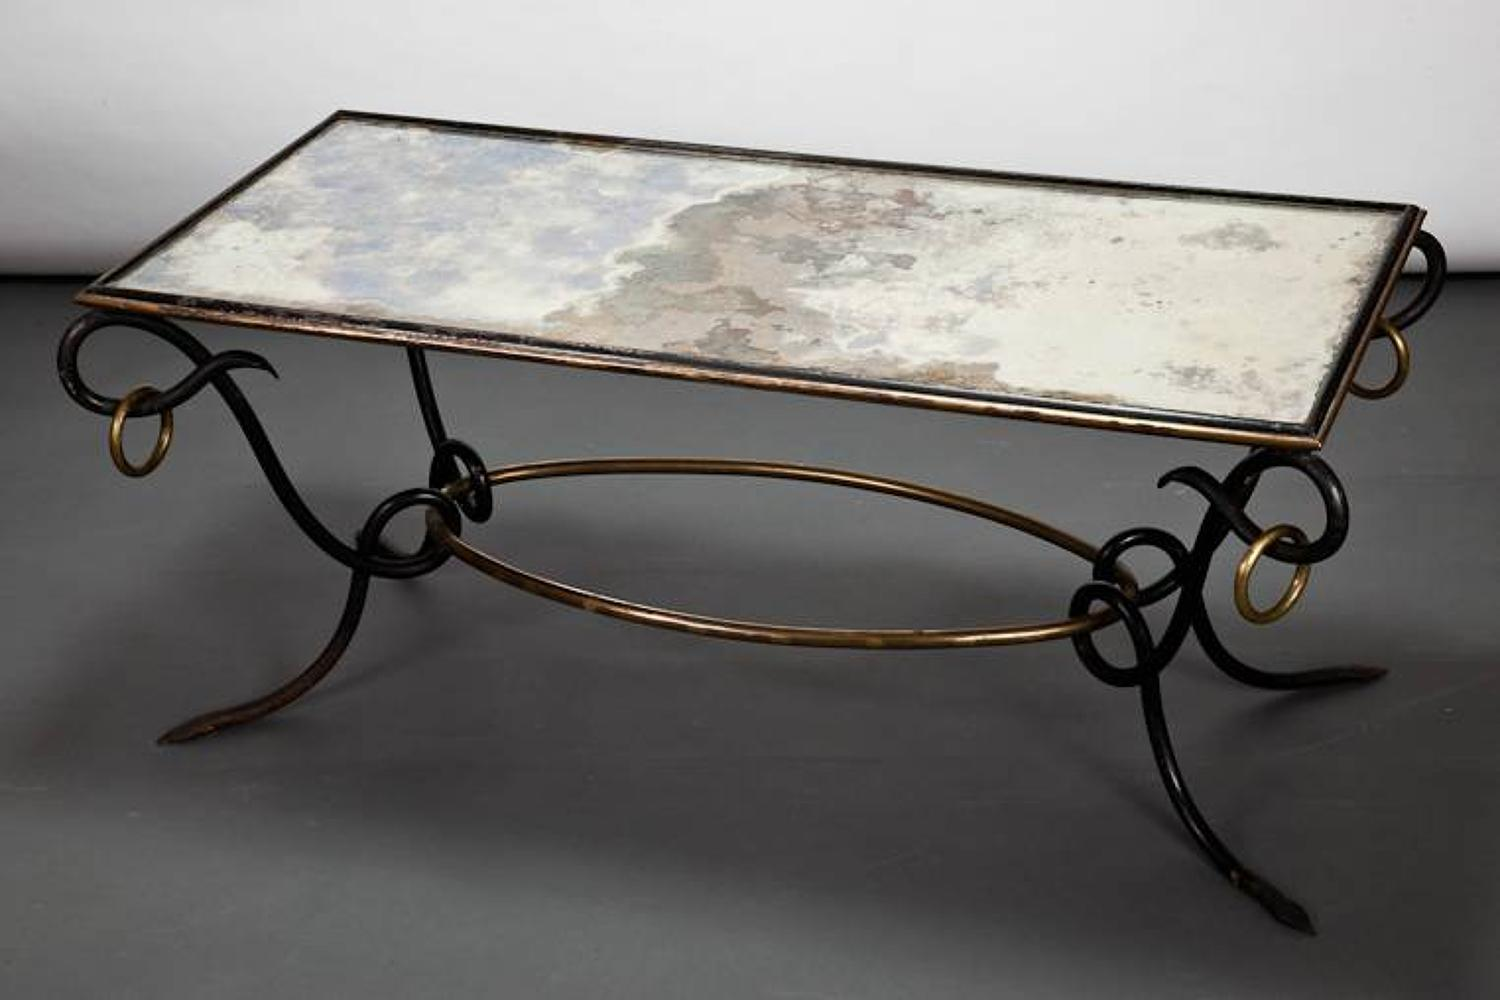 Rene Drouet Coffee table